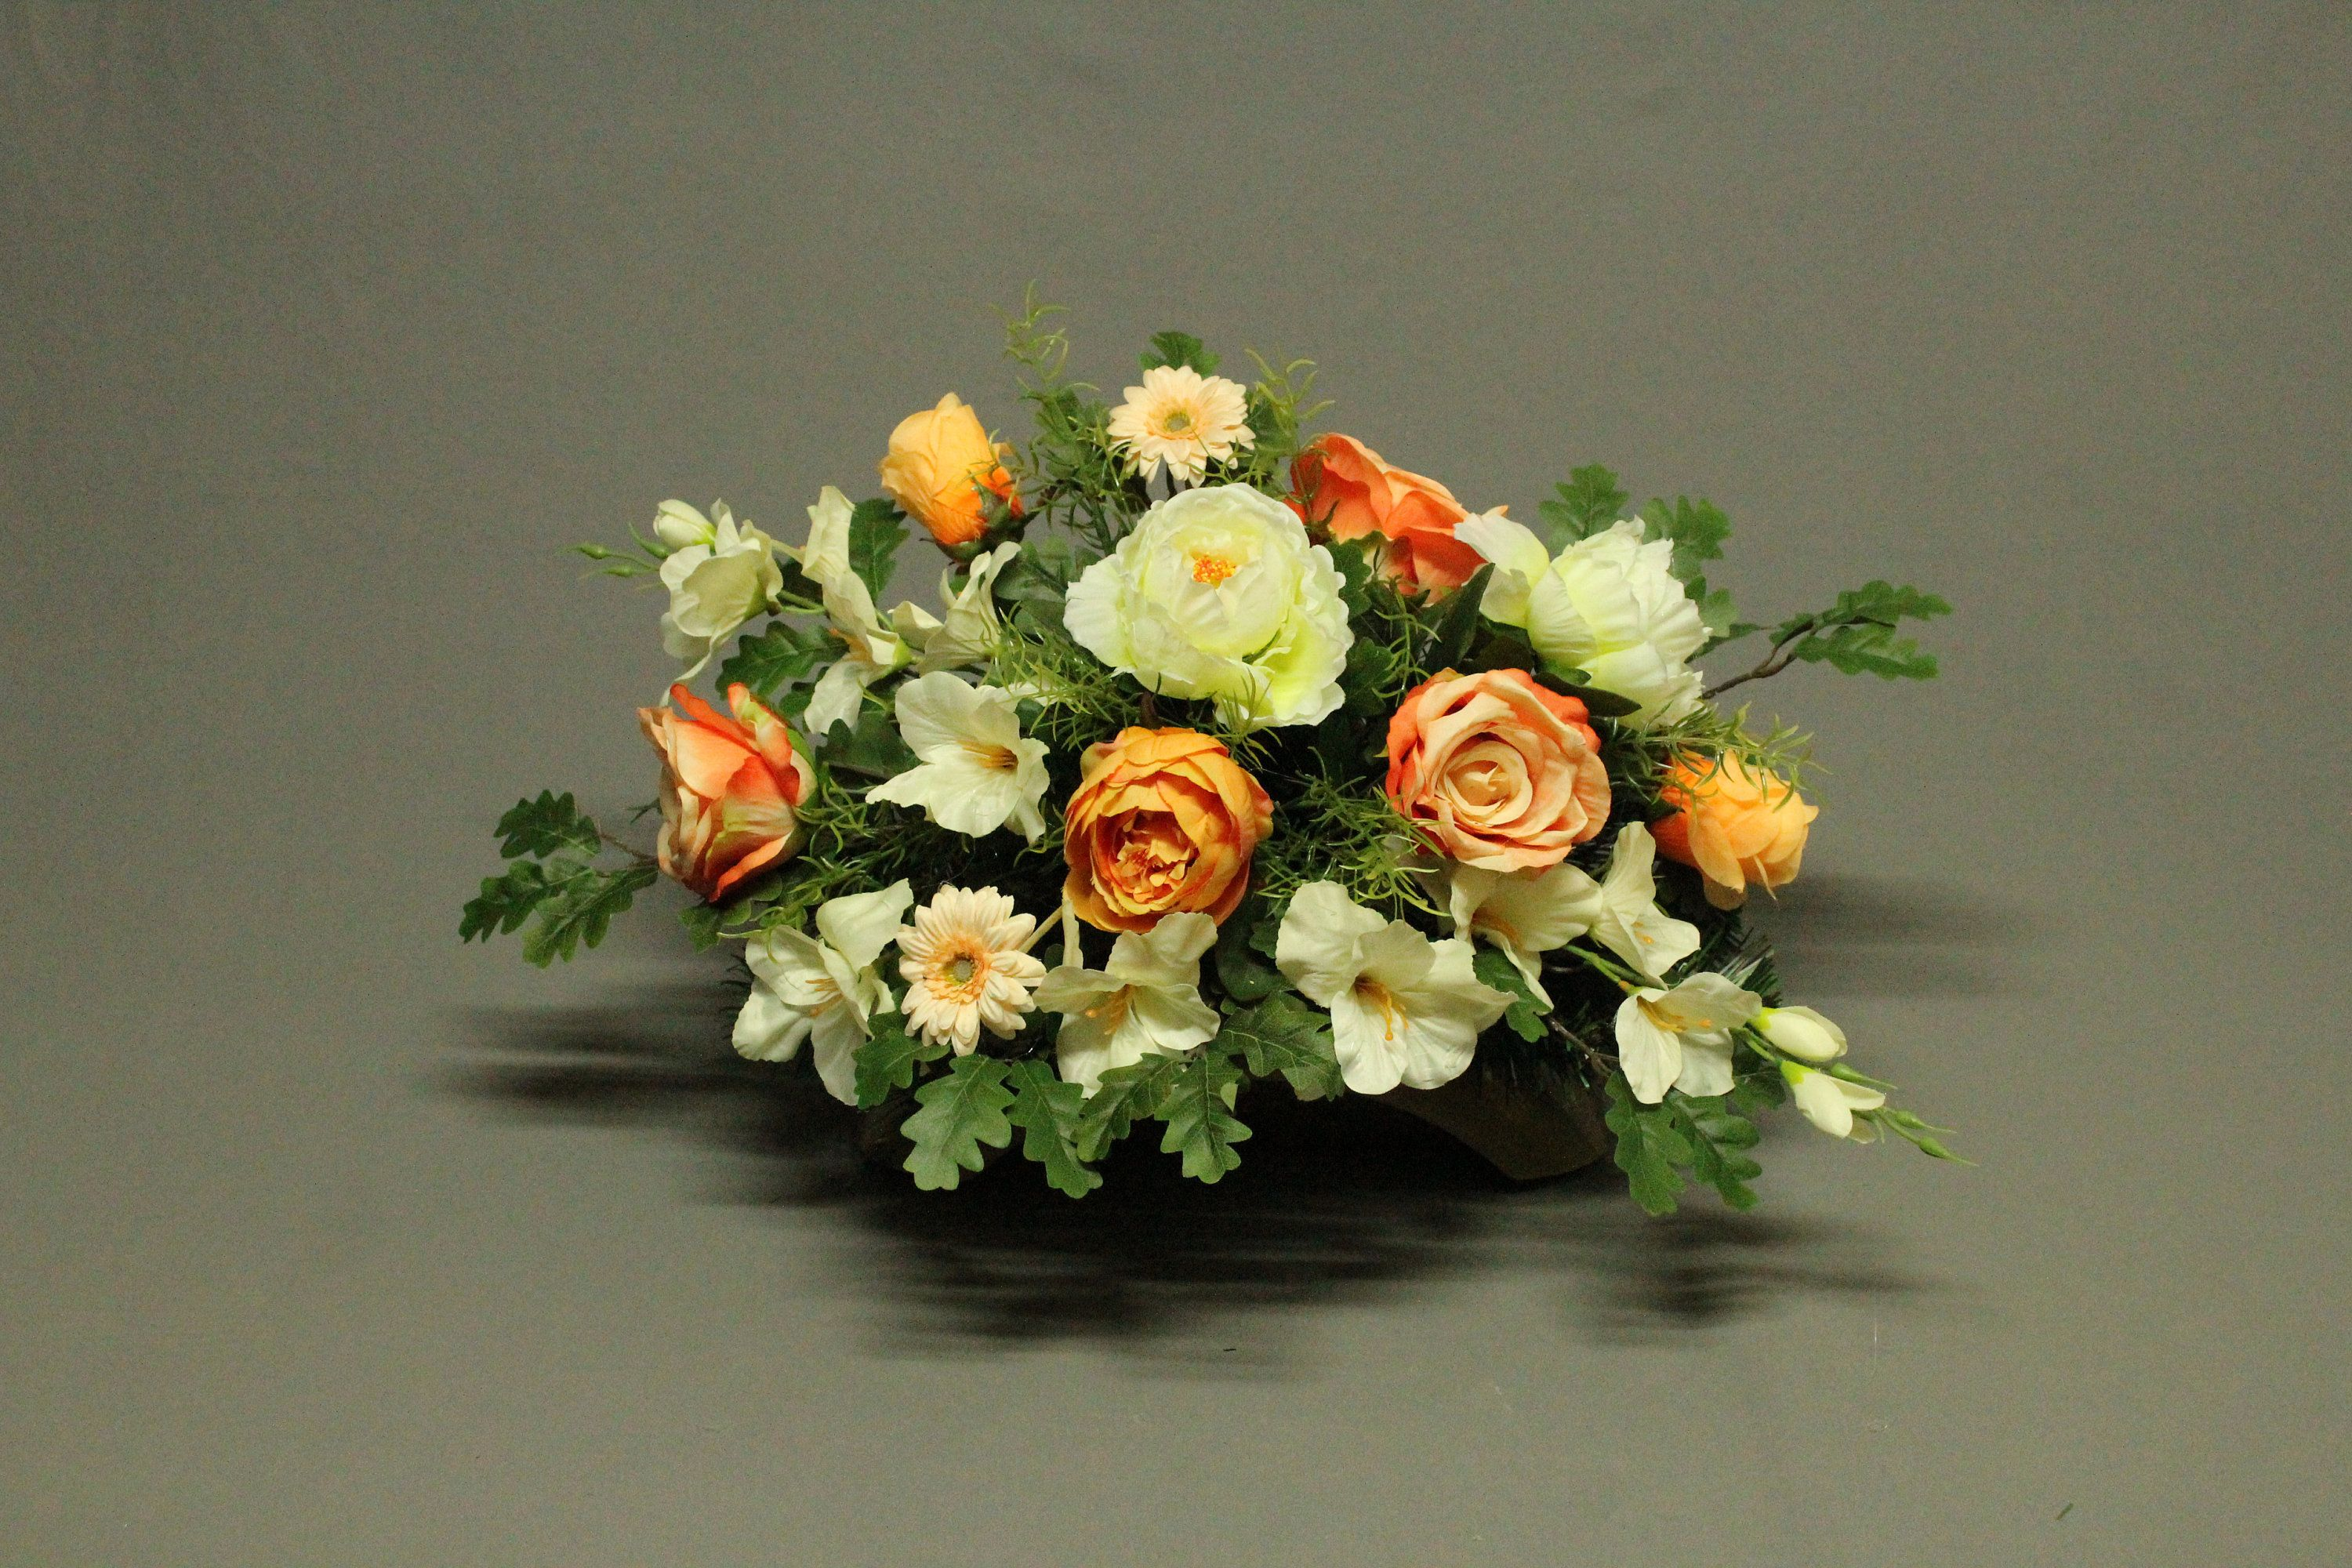 Tombstone Decoration Artificial Flowers Decoration For Monument Tomb For Grave Cemetery Decorations Feast Of The Dead Funeral Decorations Artificial Flowers Cemetery Decorations Flowers